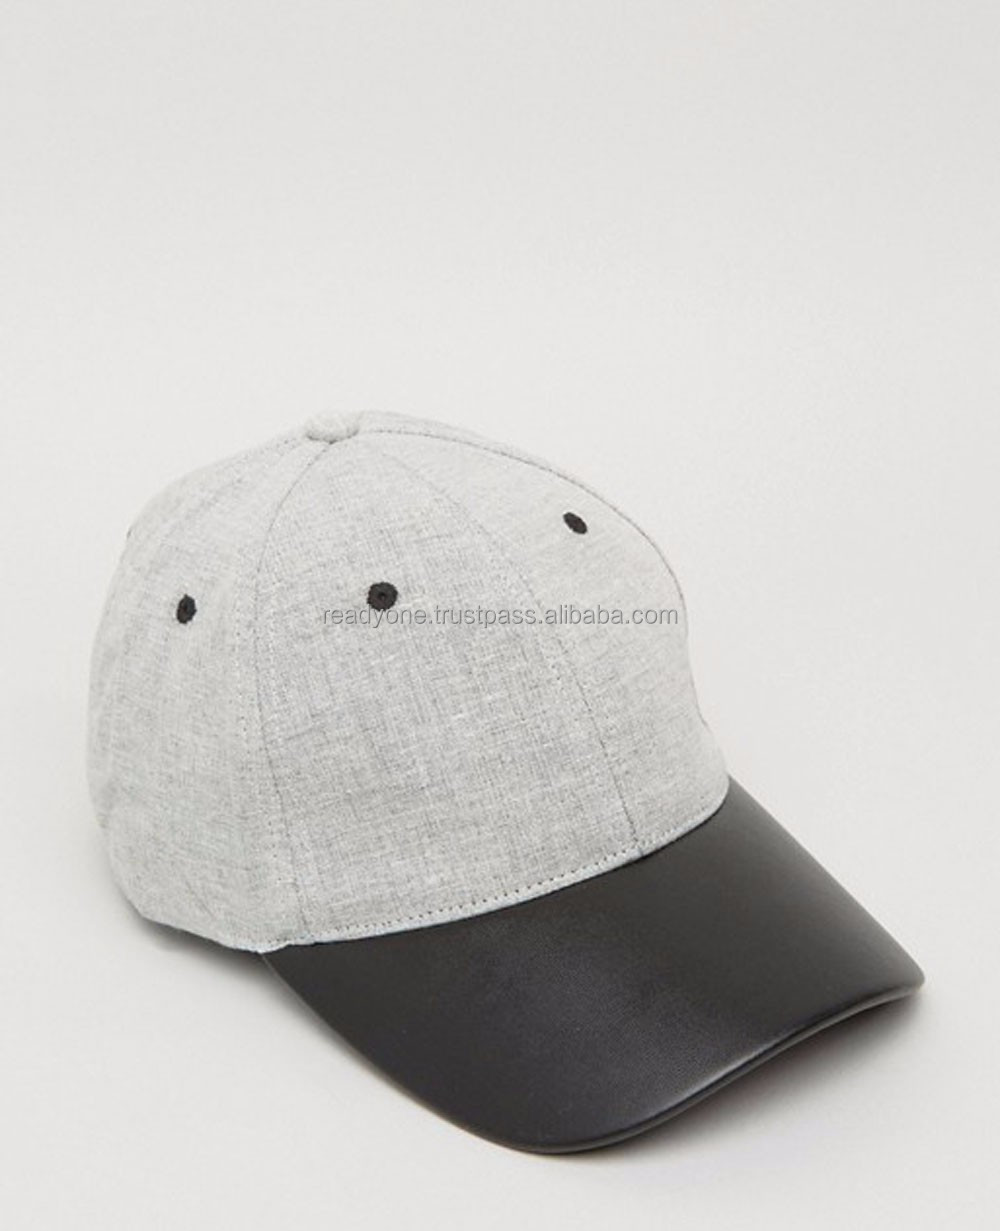 wholesale man hat and men caps custom cheap sports caps with ear hole